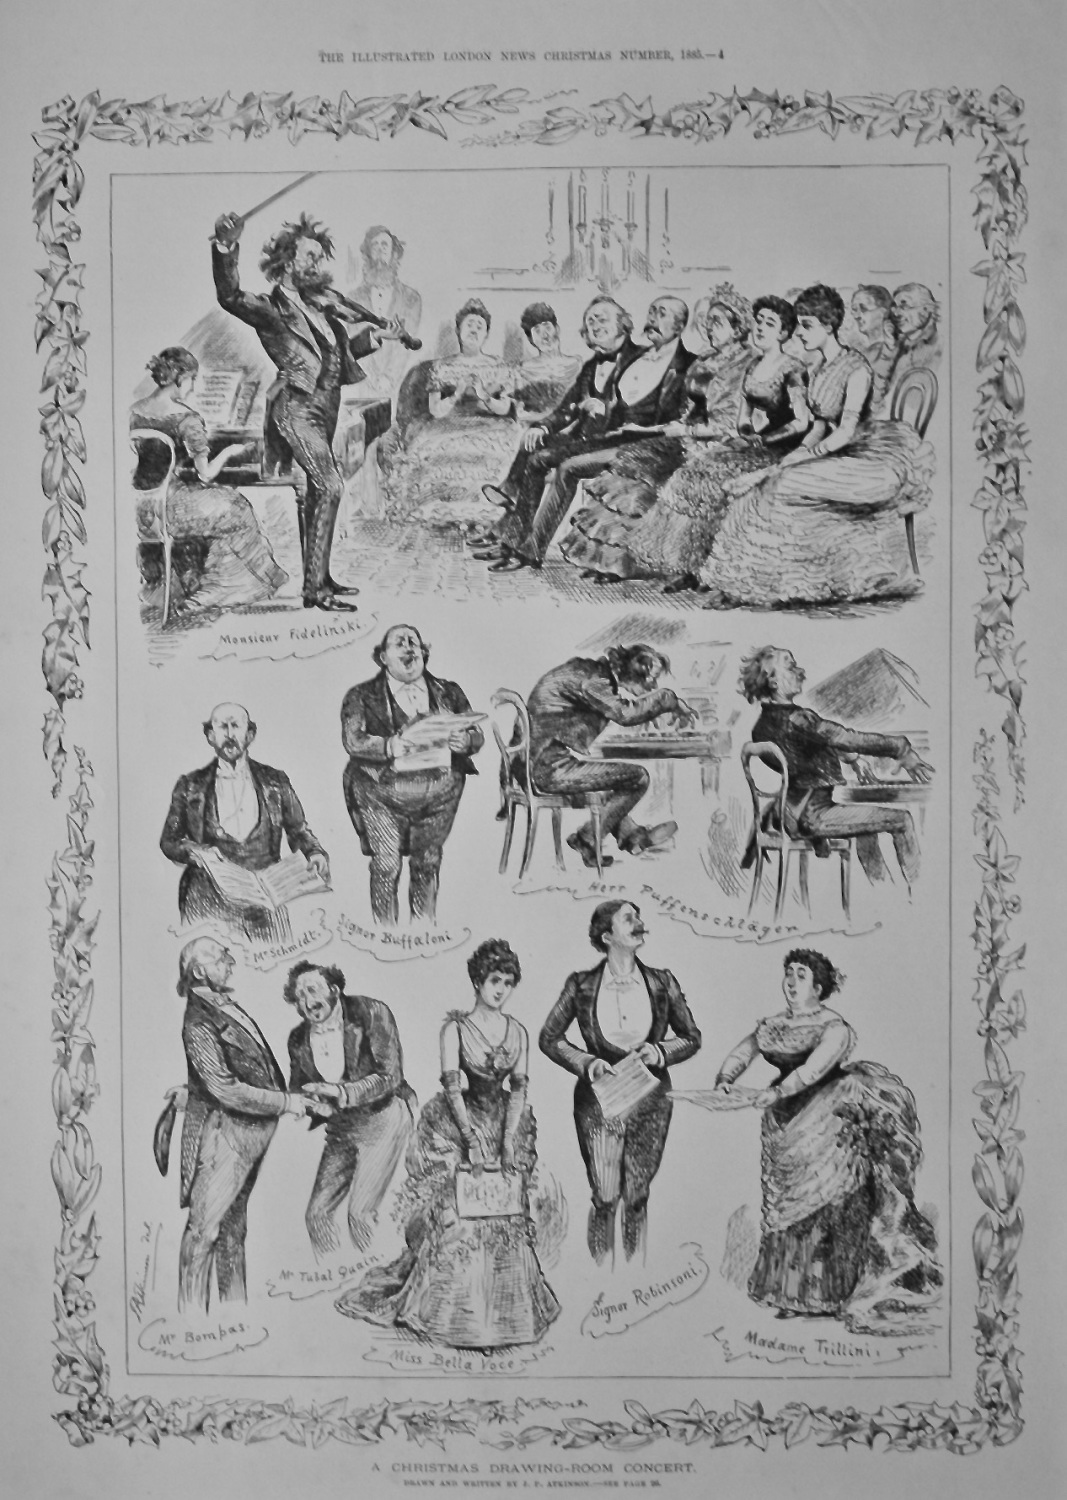 A Christmas Drawing-Room Concert.   1885.